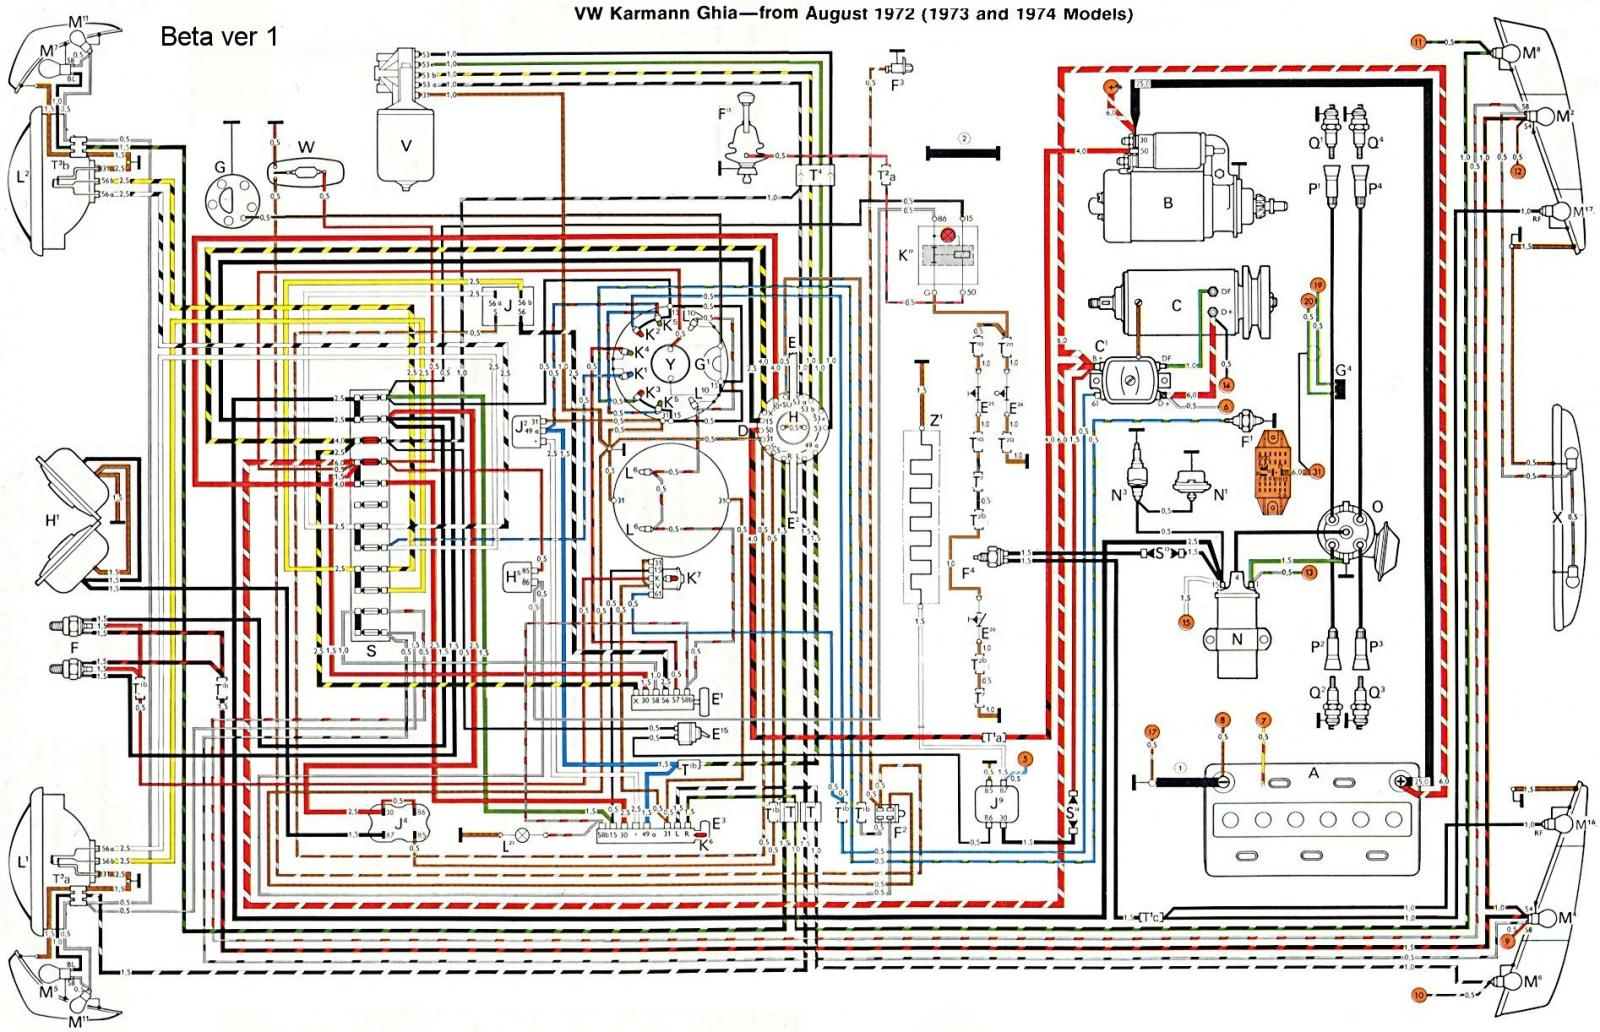 1188328 thesamba com ghia view topic 73 74 wiring diagram beta 480 rr wiring diagram at aneh.co